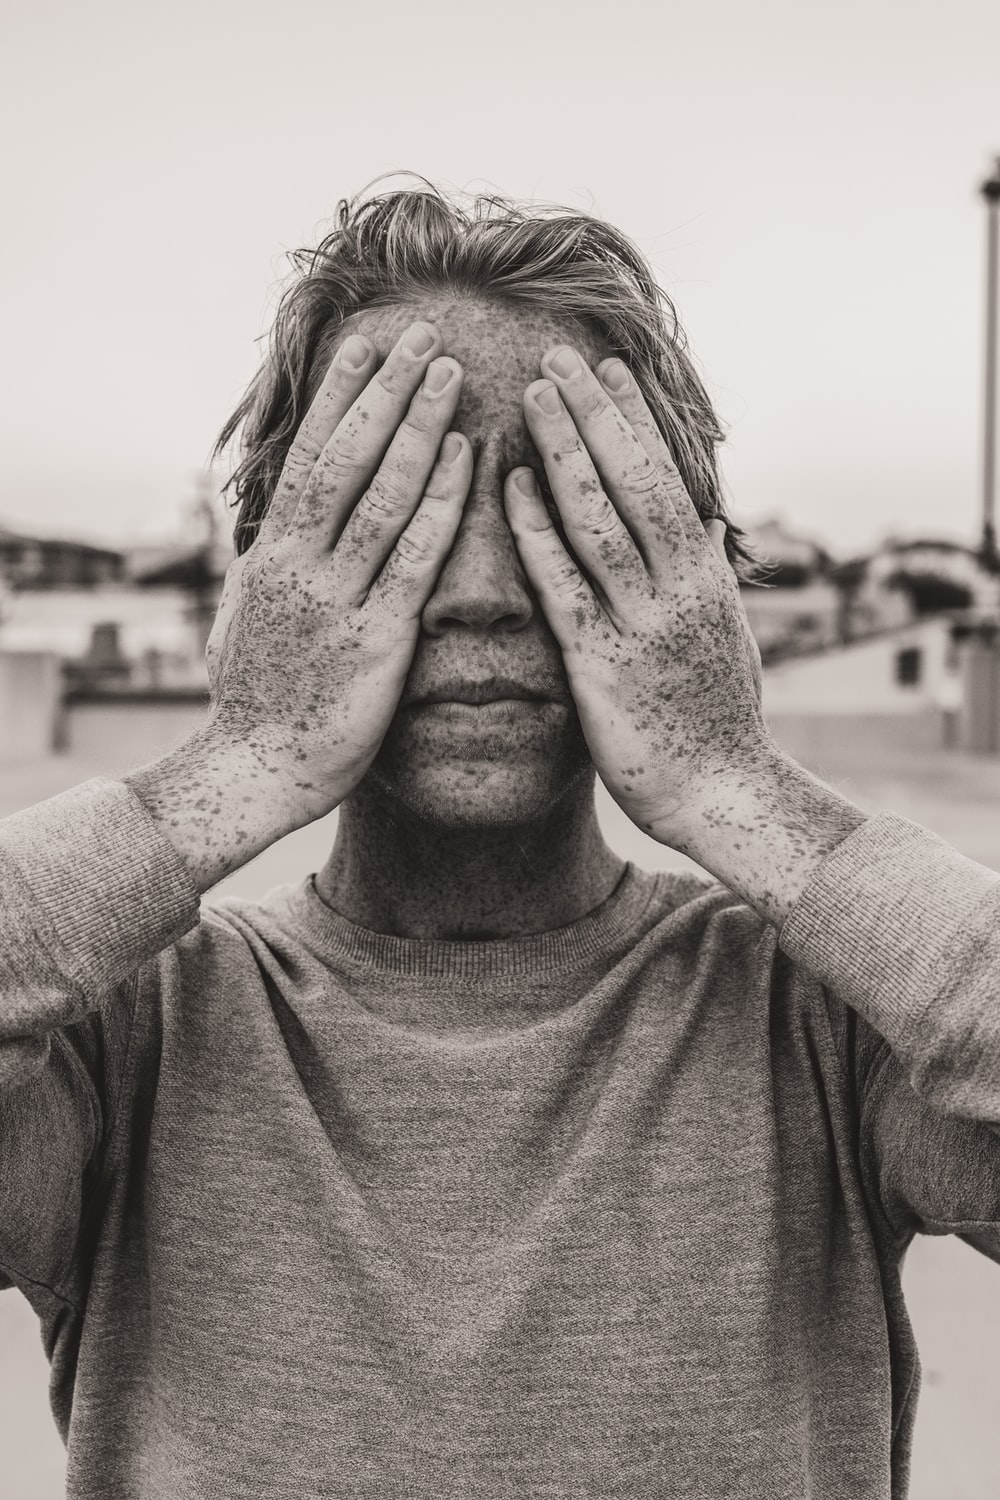 man in gray crew neck shirt covering his face with his hands